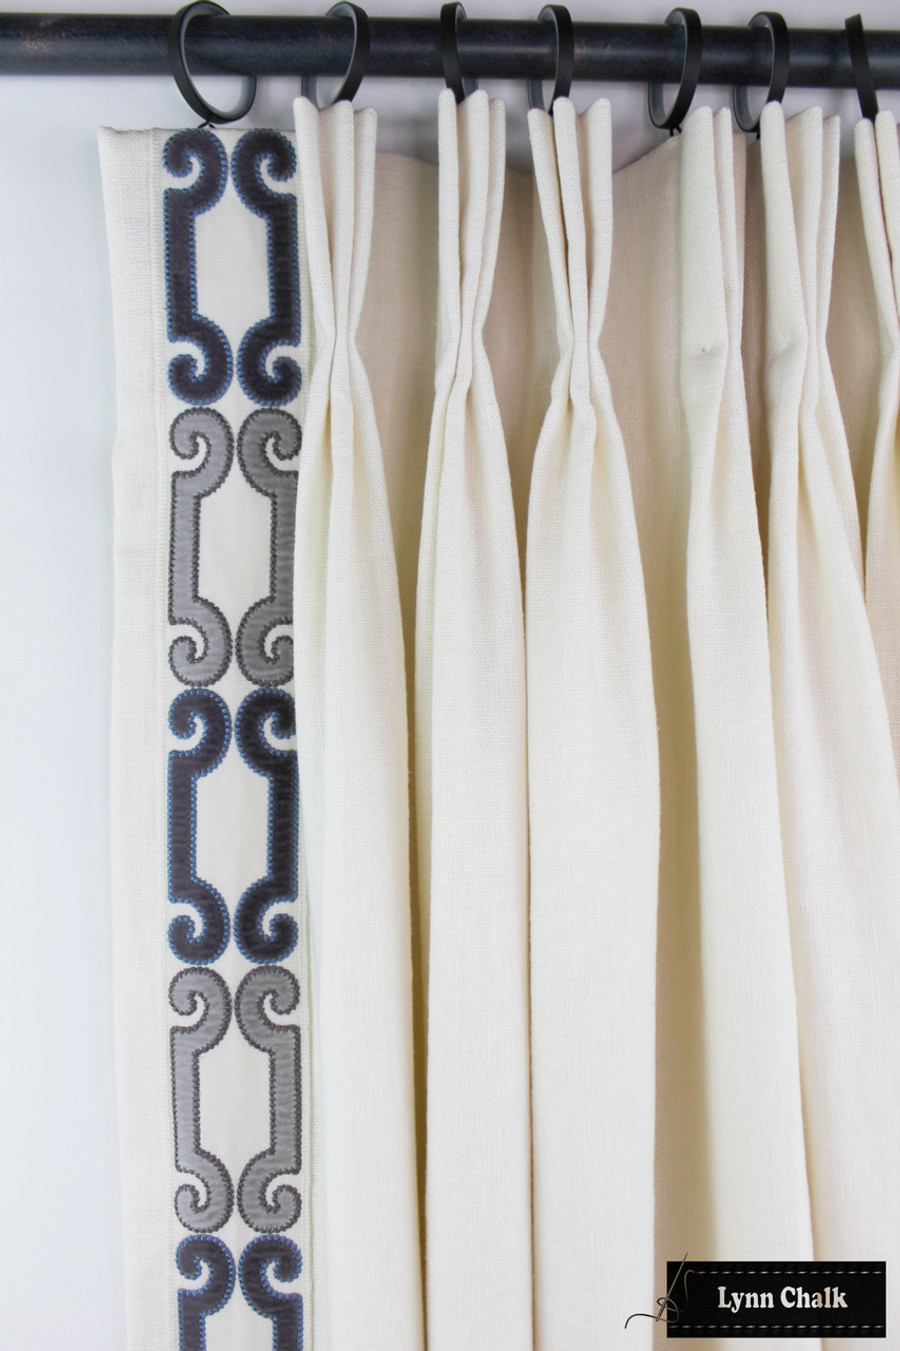 "Trend 01838 Glacier Drapes with Zimmer Rohde Velvet Scroll Trim 2.75"" Navy Gray 2860012598"